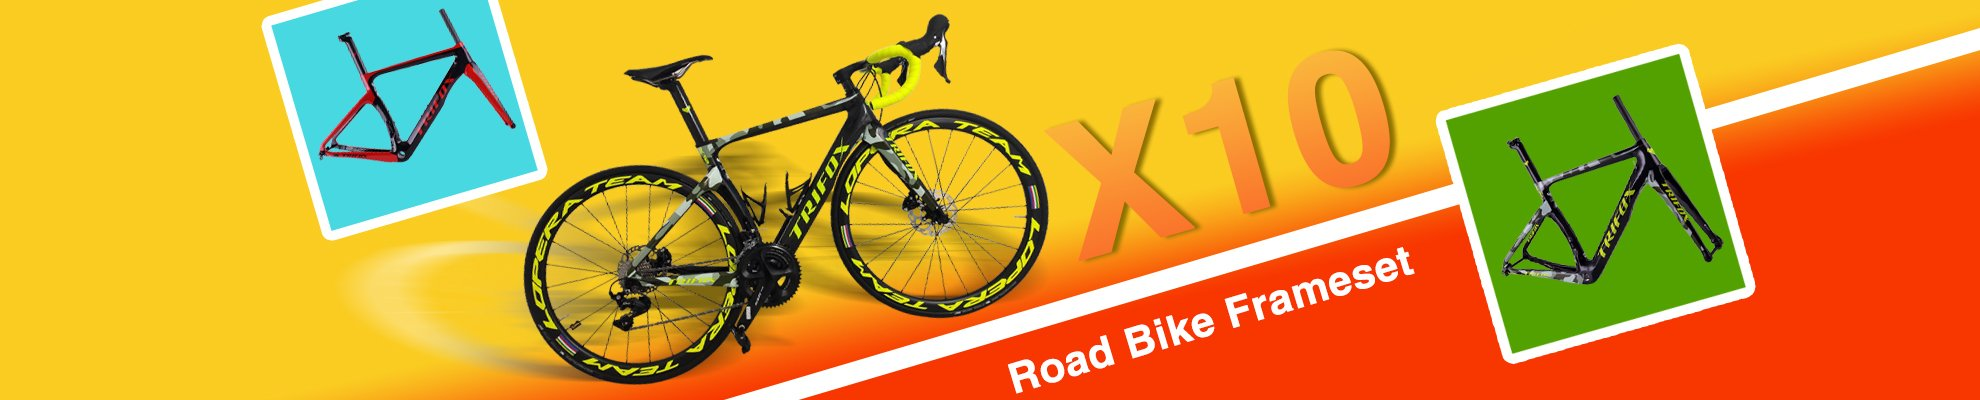 Trifox Full Carbon Road Bike Frameset X10